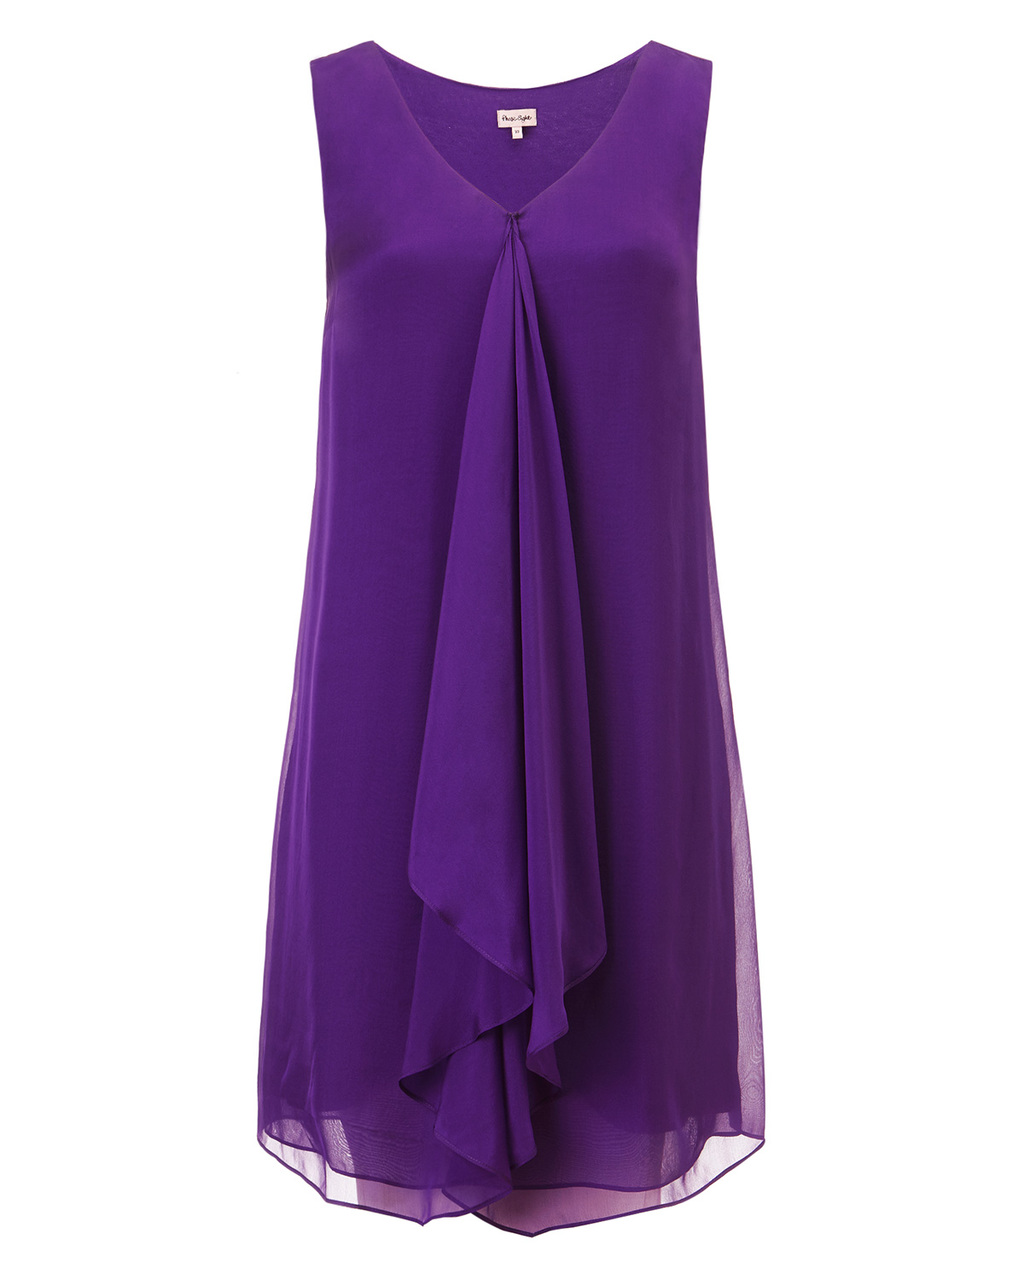 Karishma Silk Dress - style: a-line; neckline: low v-neck; fit: loose; pattern: plain; sleeve style: sleeveless; predominant colour: purple; occasions: evening, occasion; length: just above the knee; sleeve length: sleeveless; texture group: sheer fabrics/chiffon/organza etc.; bust detail: tiers/frills/bulky drapes/pleats; pattern type: fabric; season: s/s 2015